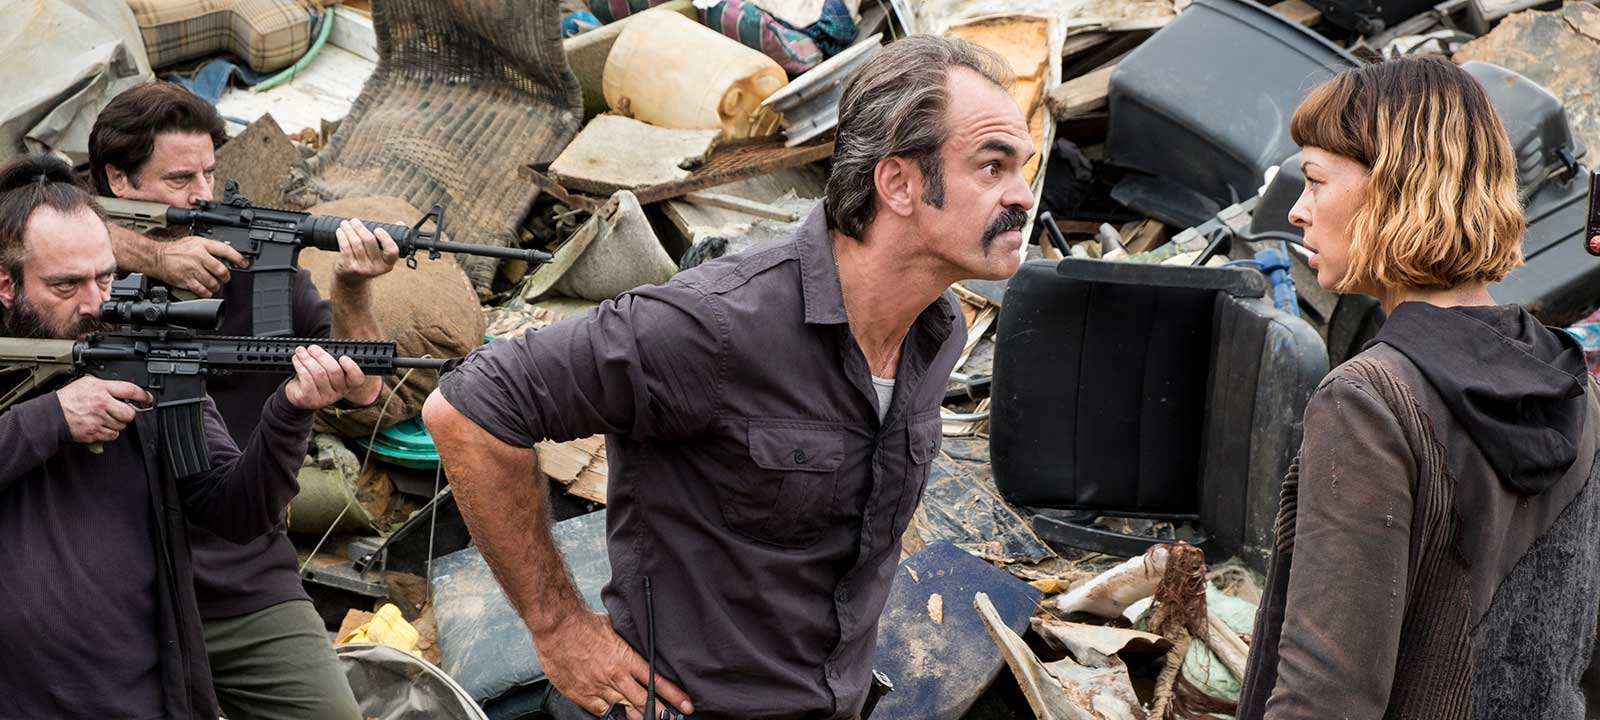 the-walking-dead-episode-810-simon-ogg-800×600-interview